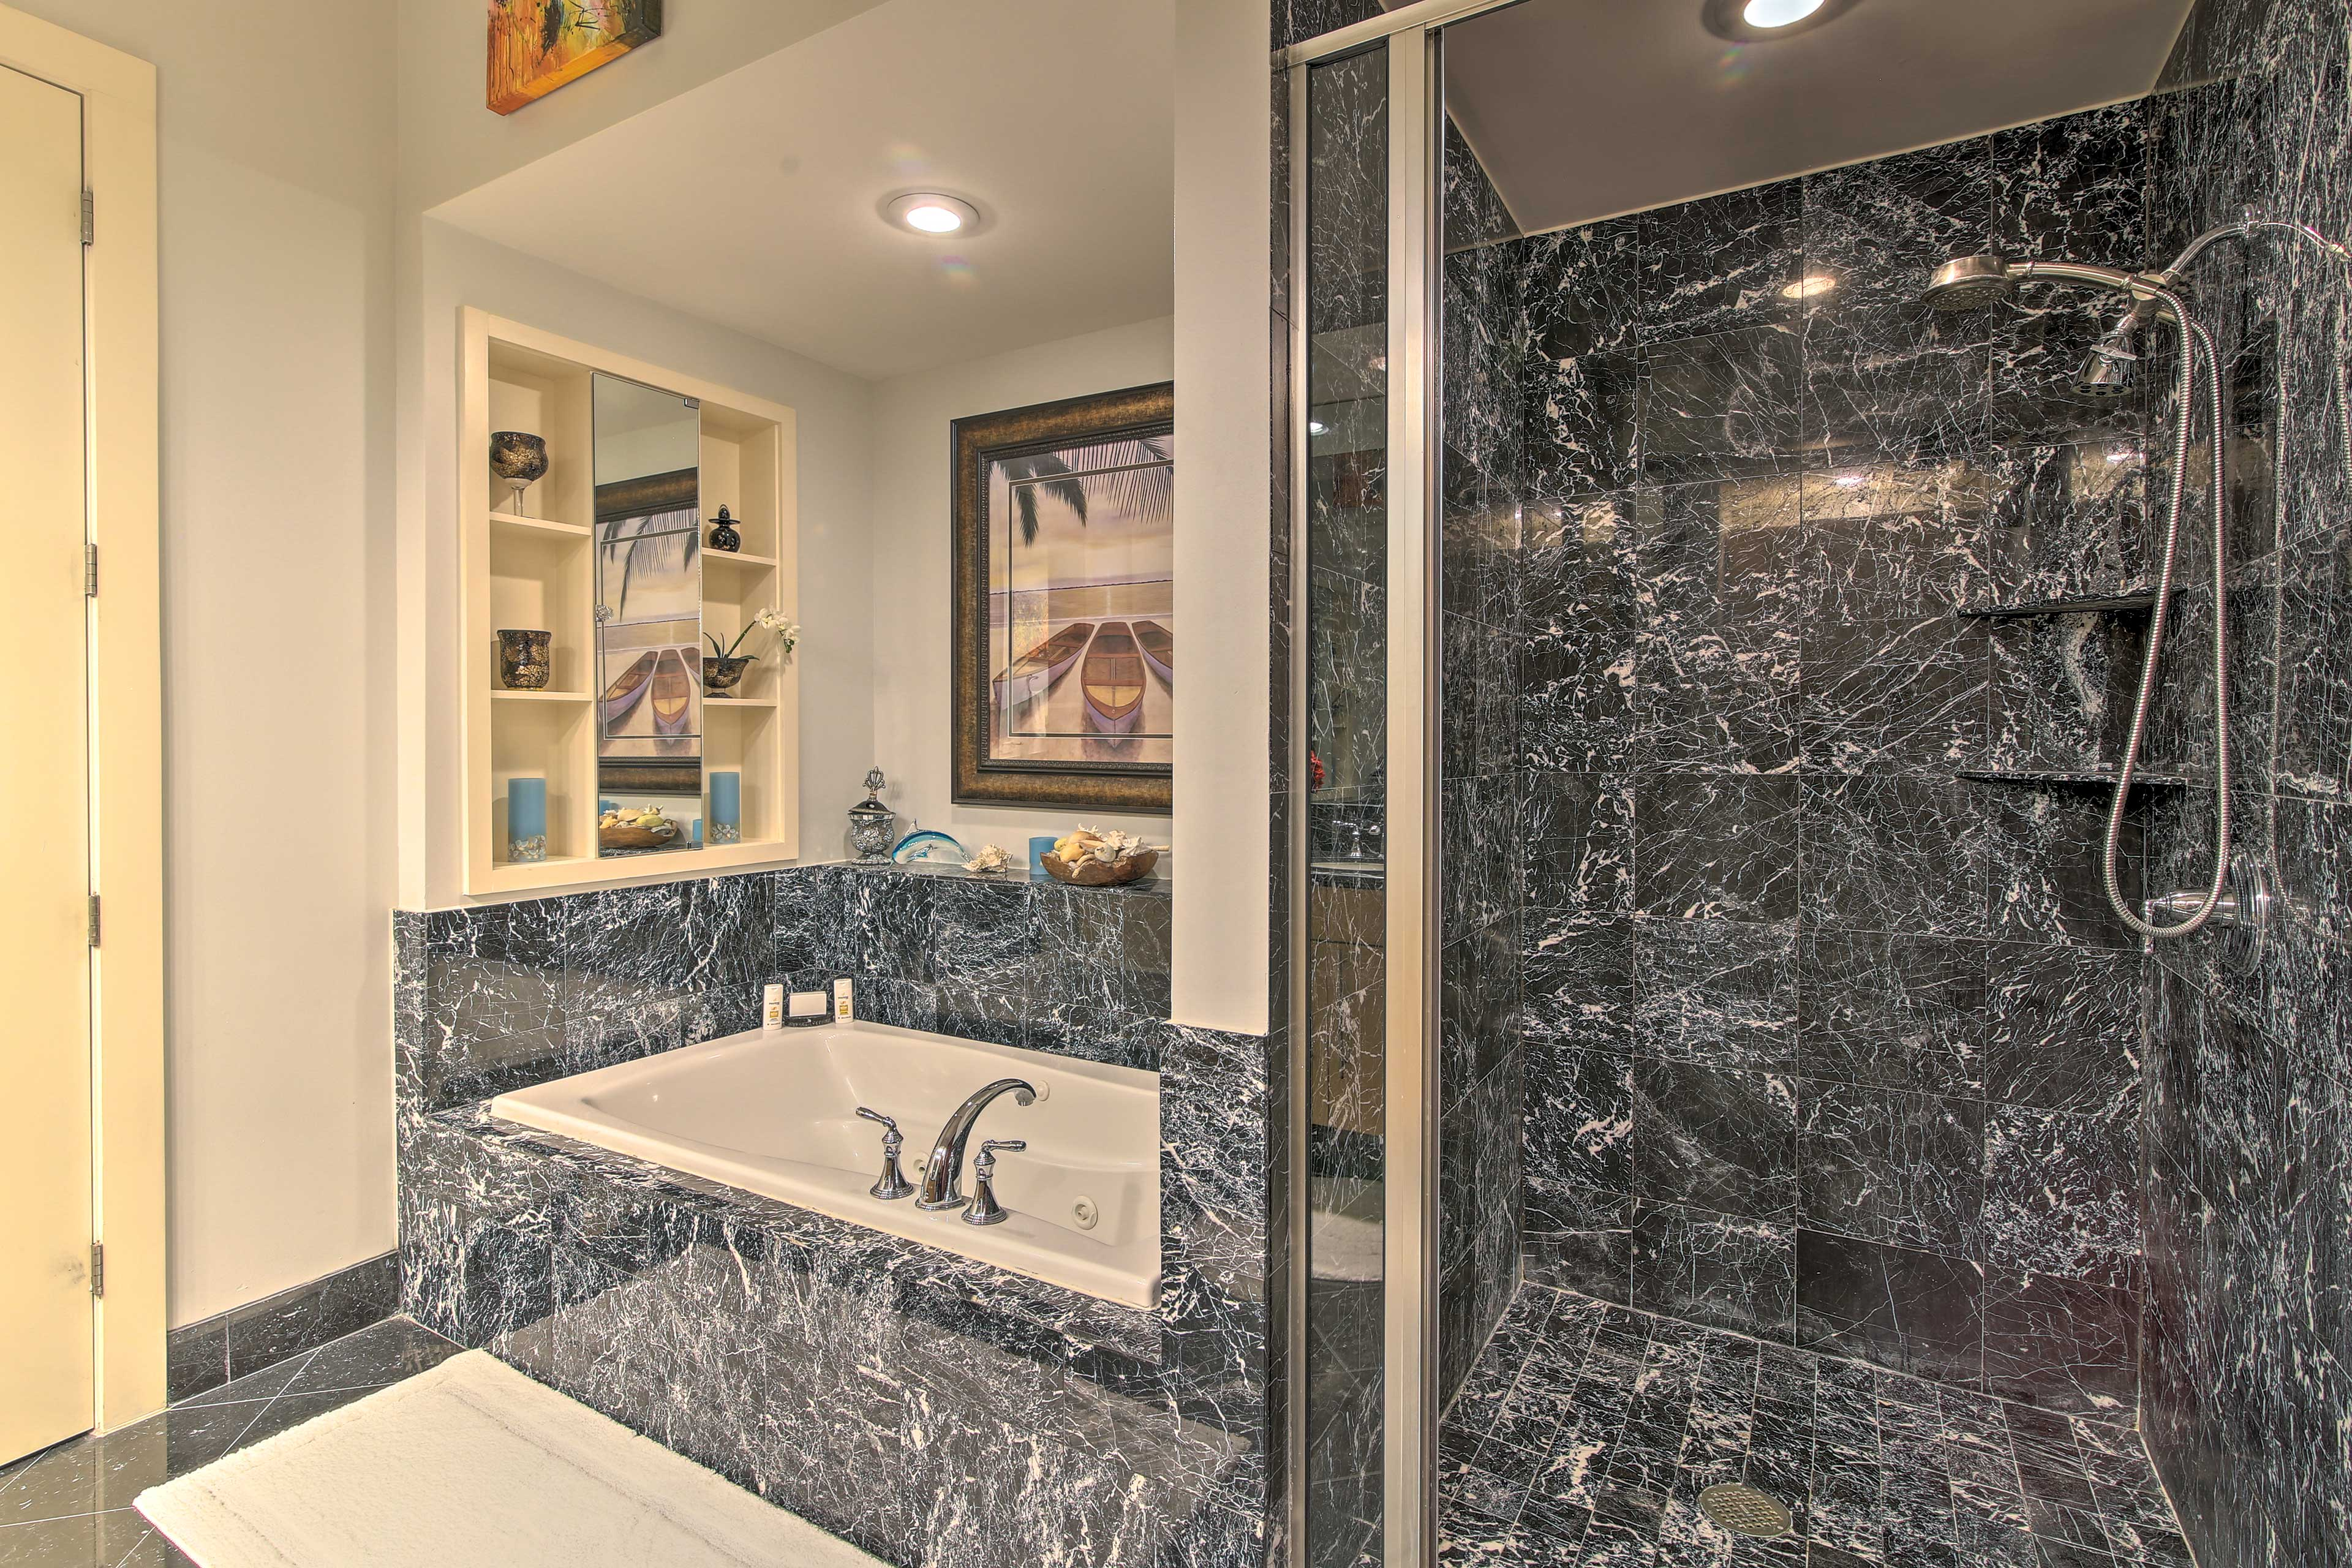 Take a soak in the jacuzzi tub or rinse lingering sand off in the shower.